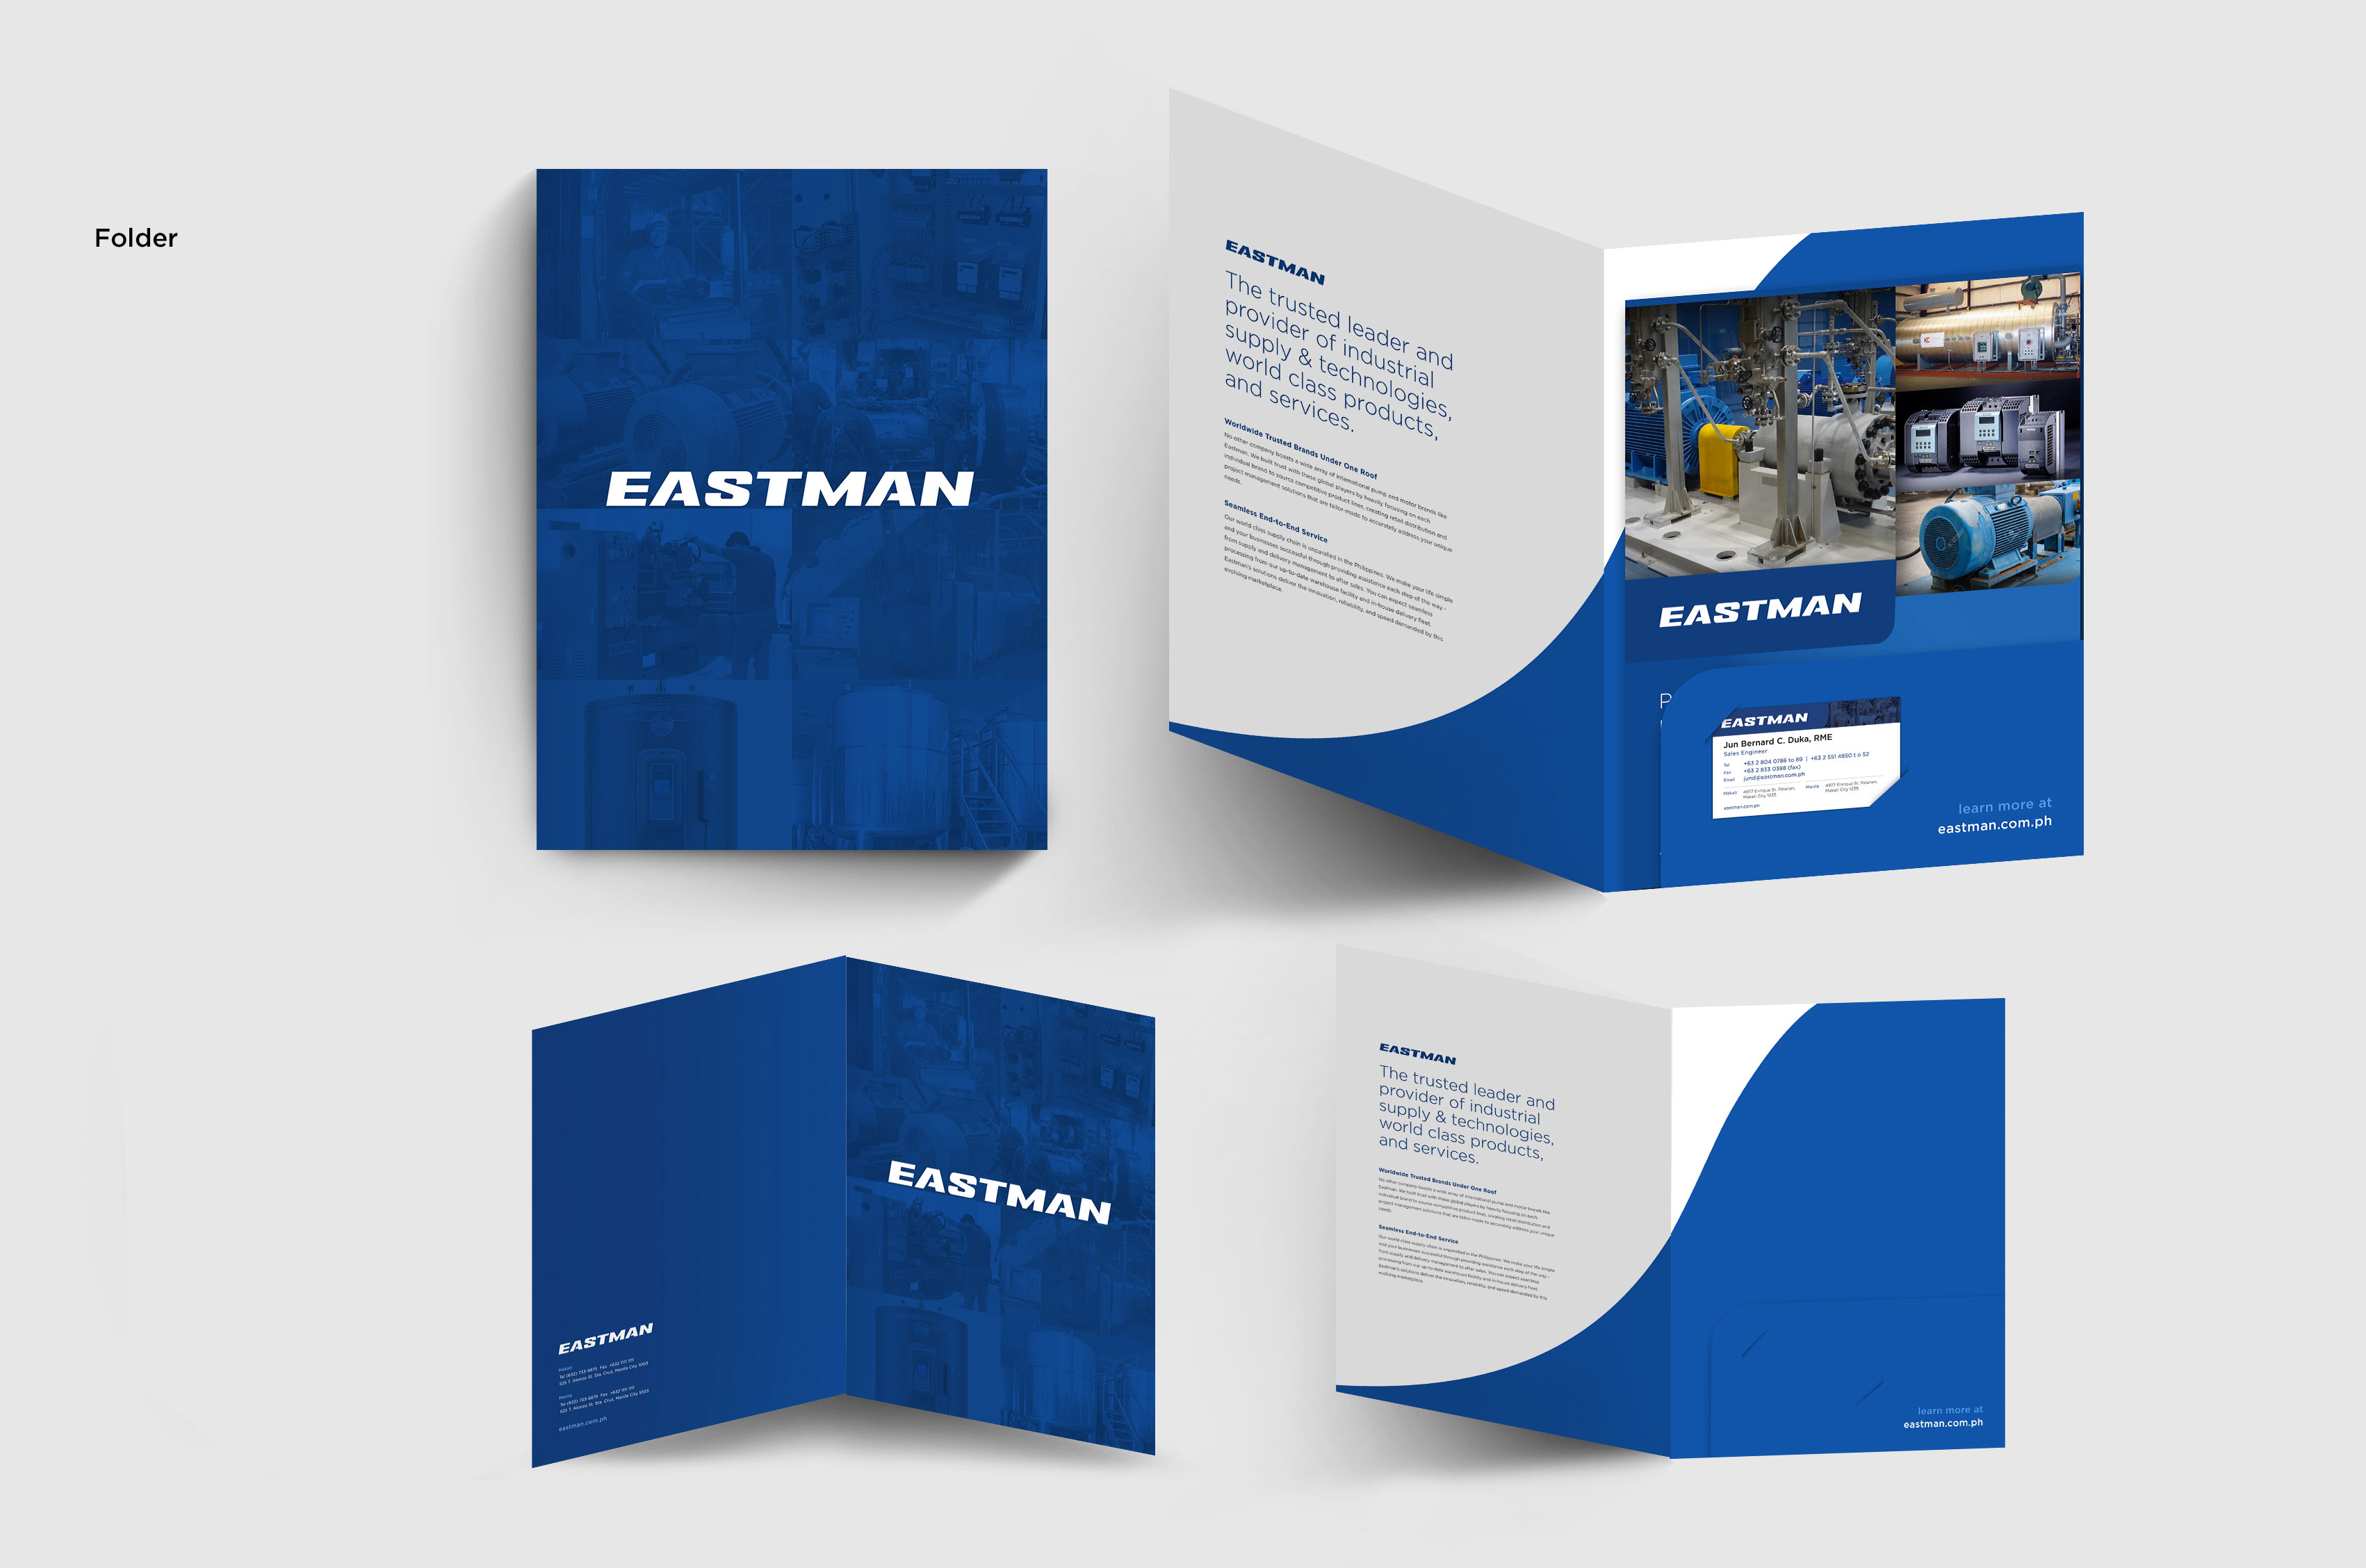 Eastman-Collaterals-Portfolio-Folder